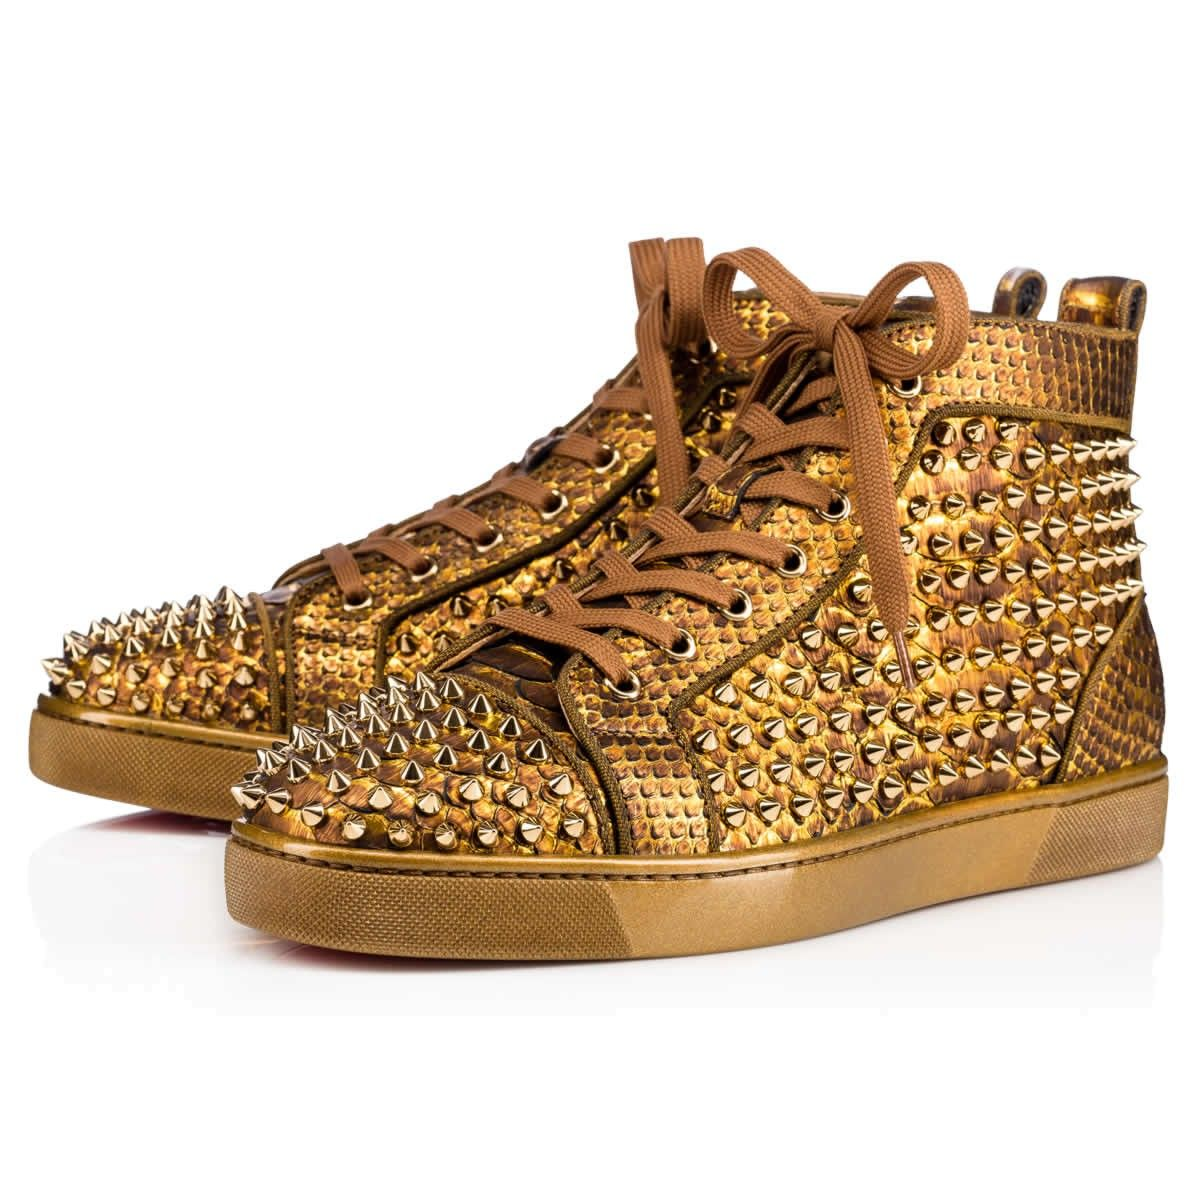 1a24bb241695 CHRISTIAN LOUBOUTIN Louis Spikes Orlato Flat Antic Gold Python Cuirasse -  Men Shoes - Christian Louboutin.  christianlouboutin  shoes